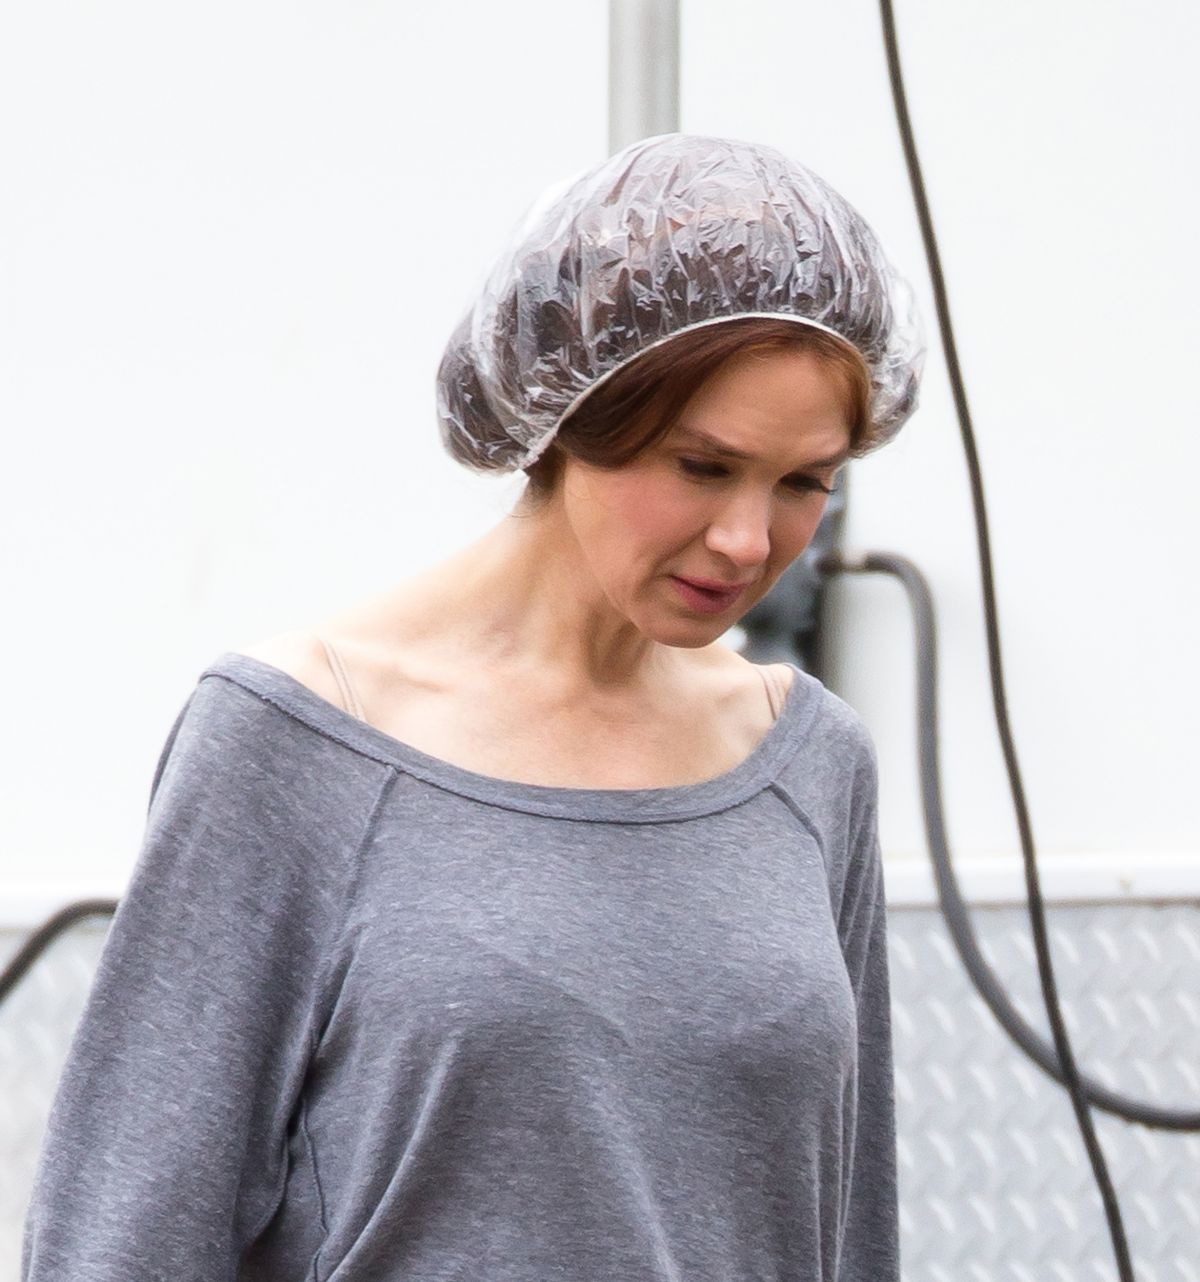 RENEE ZELLWEGER on the Set of Her New Movie in Mississippi